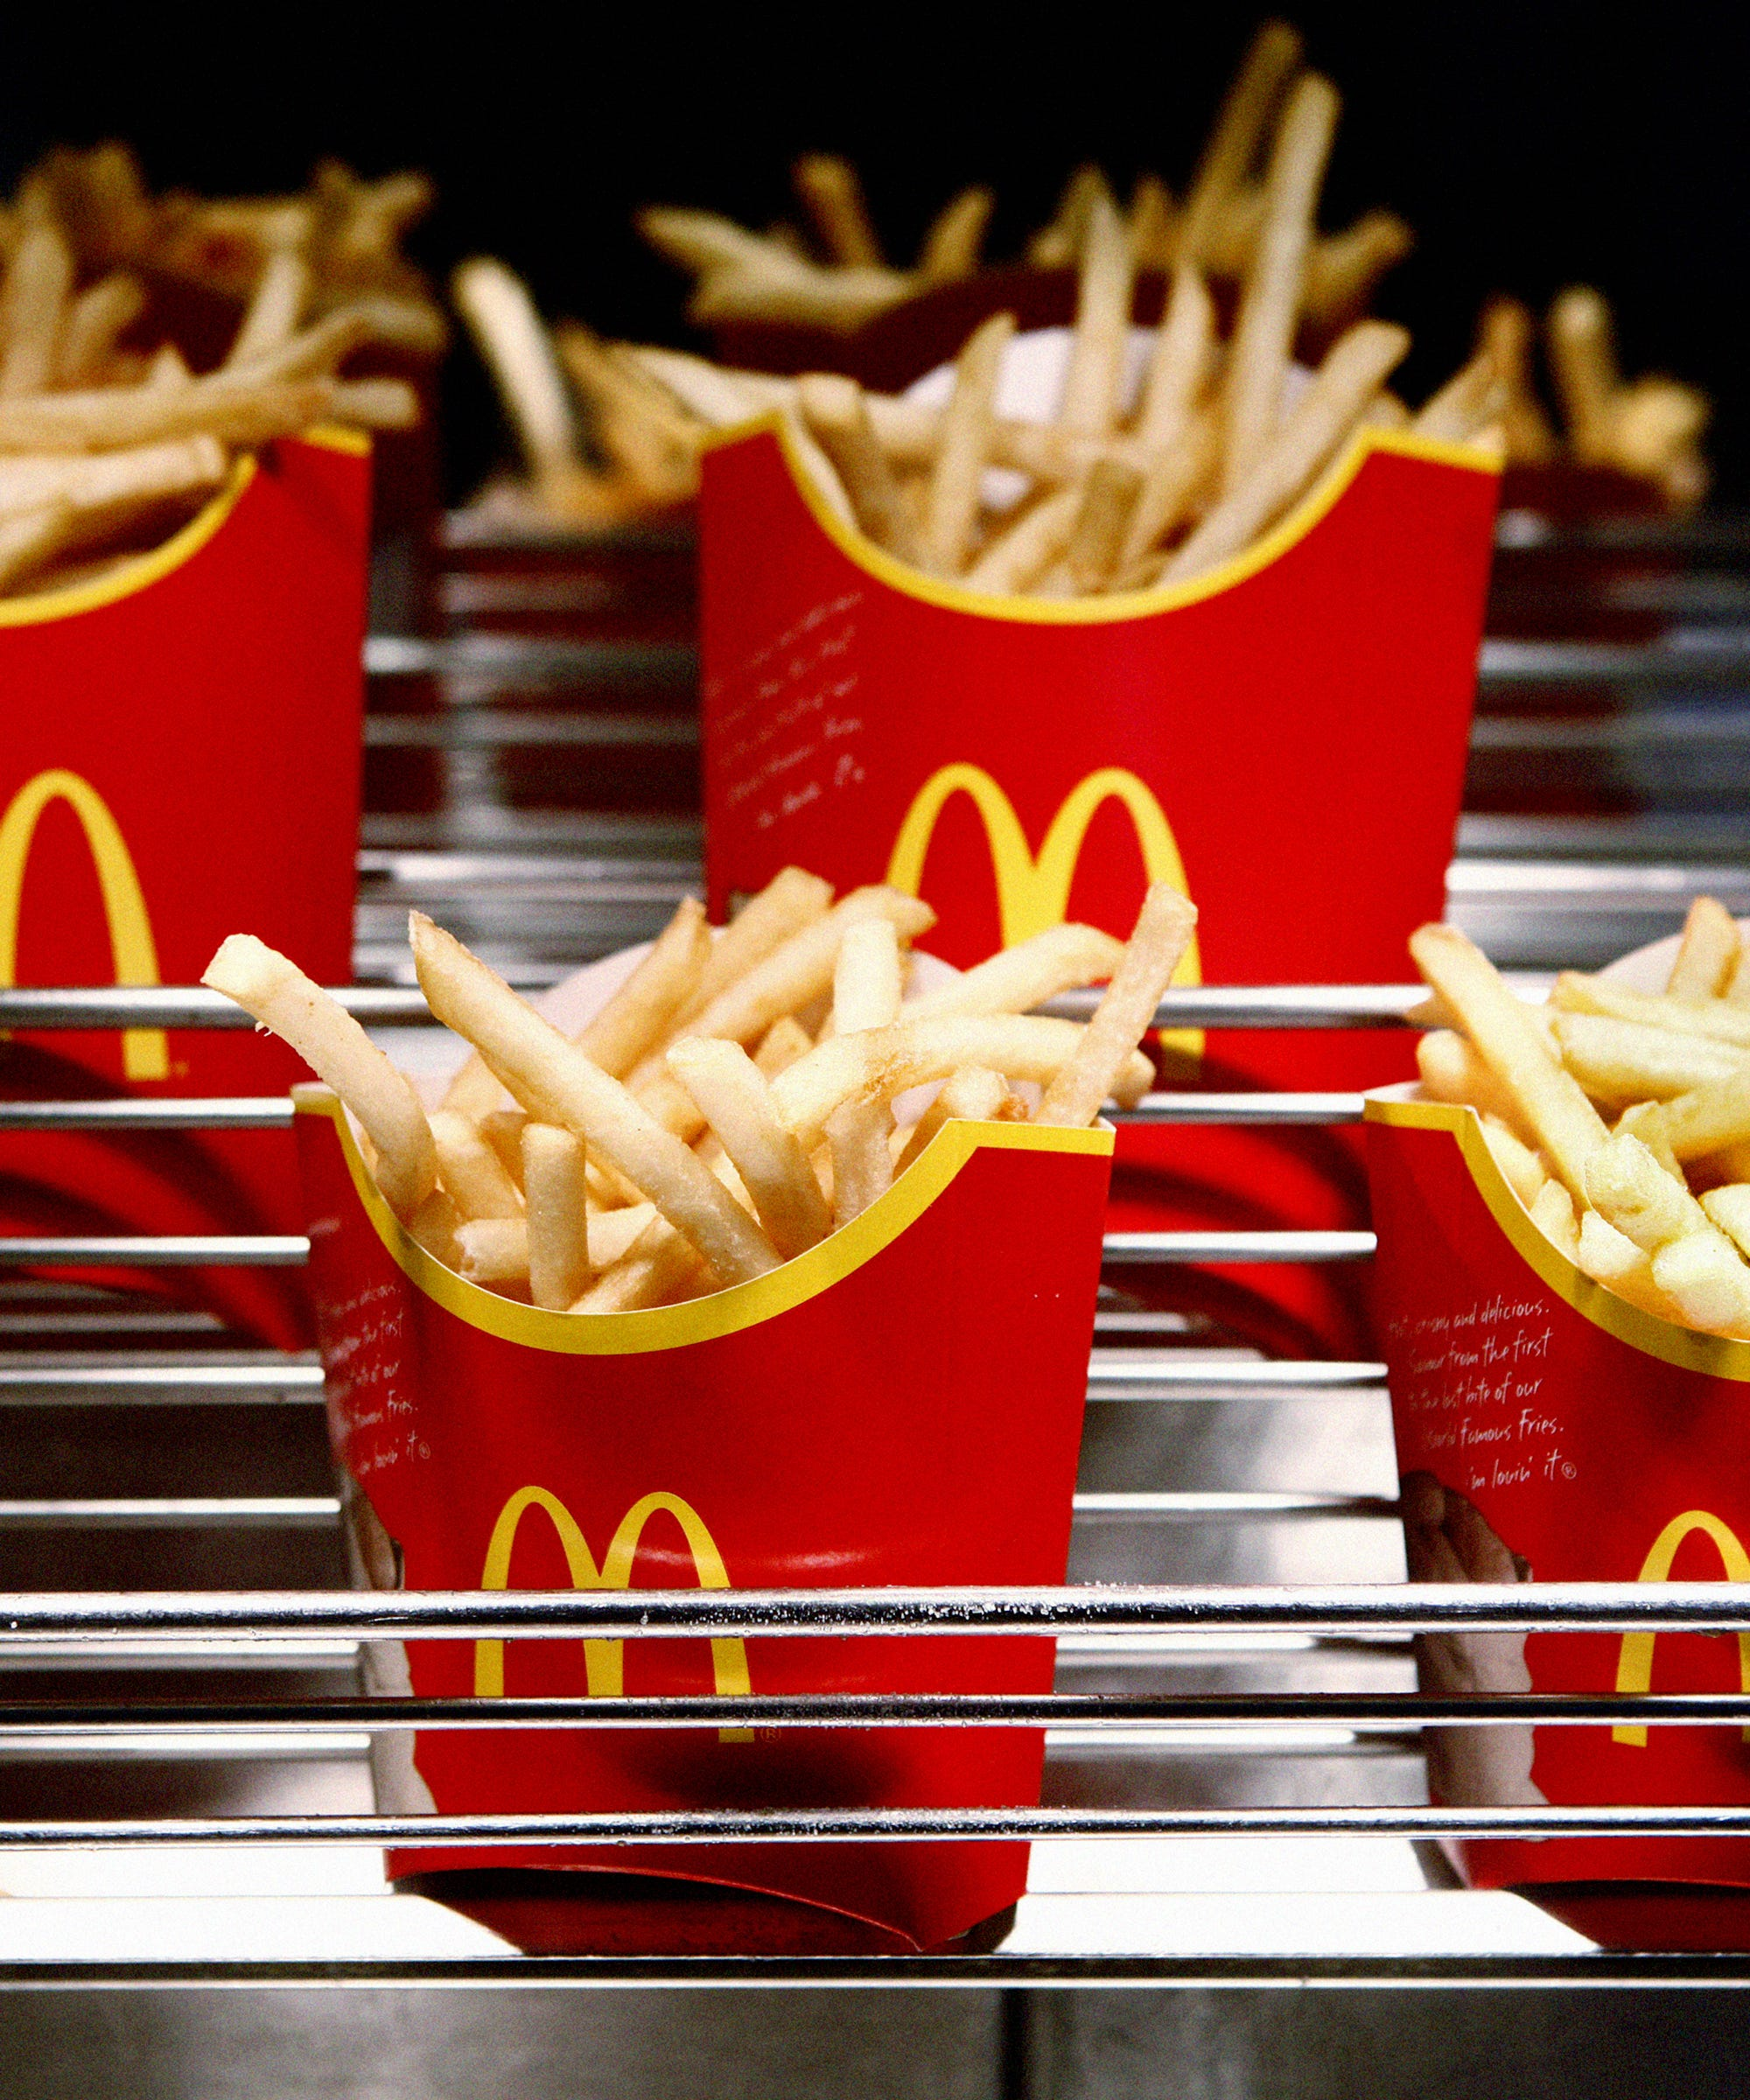 Prissy Mcdonalds French Fries Hair Loss Beauty Benefits Mcdonalds Rainbow Fries Snopes Does Mcdonalds Serve Rainbow Fries nice food Mcdonalds Rainbow Fries